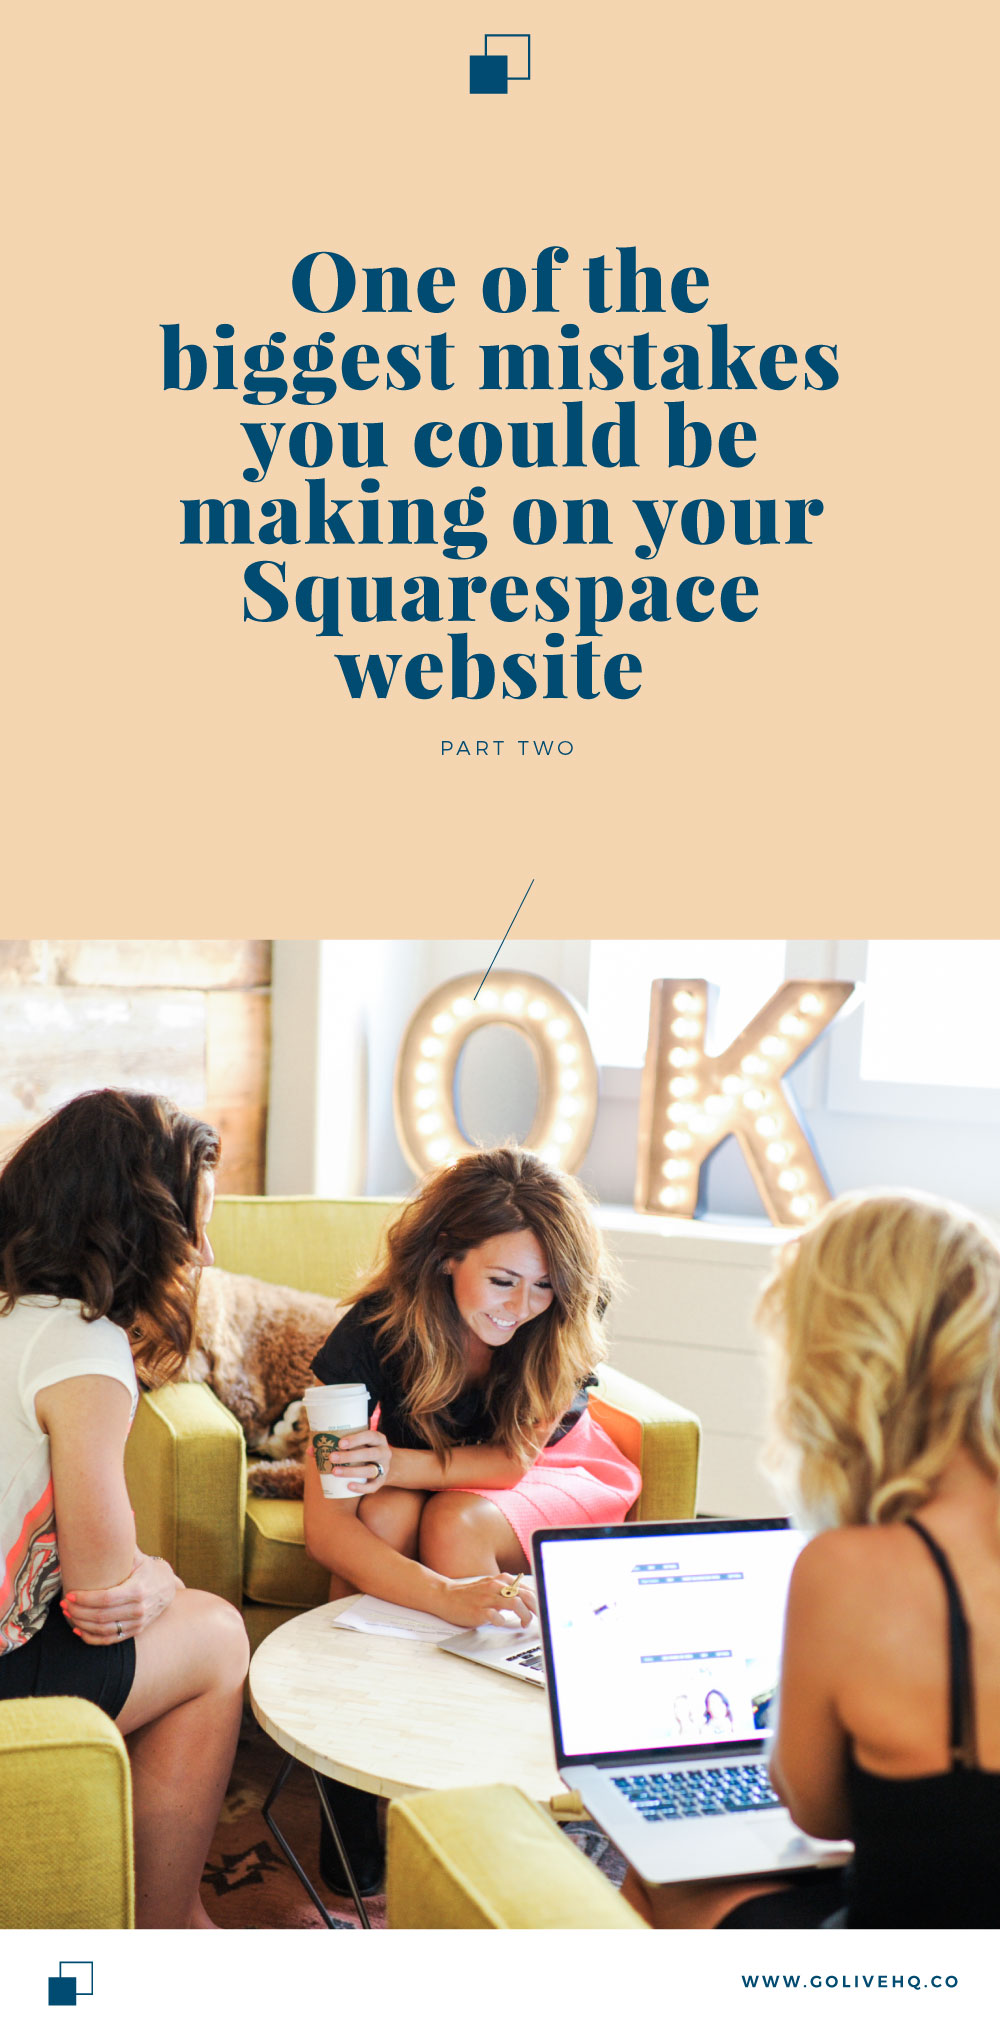 ONE OF THE BIGGEST MISTAKES YOU COULD BE MAKING WITH YOUR SQUARESPACE WEBSITE ONE OF THE BIGGEST MISTAKES YOU COULD BE MAKING WITH YOUR SQUARESPACE WEBSITE PT. 2